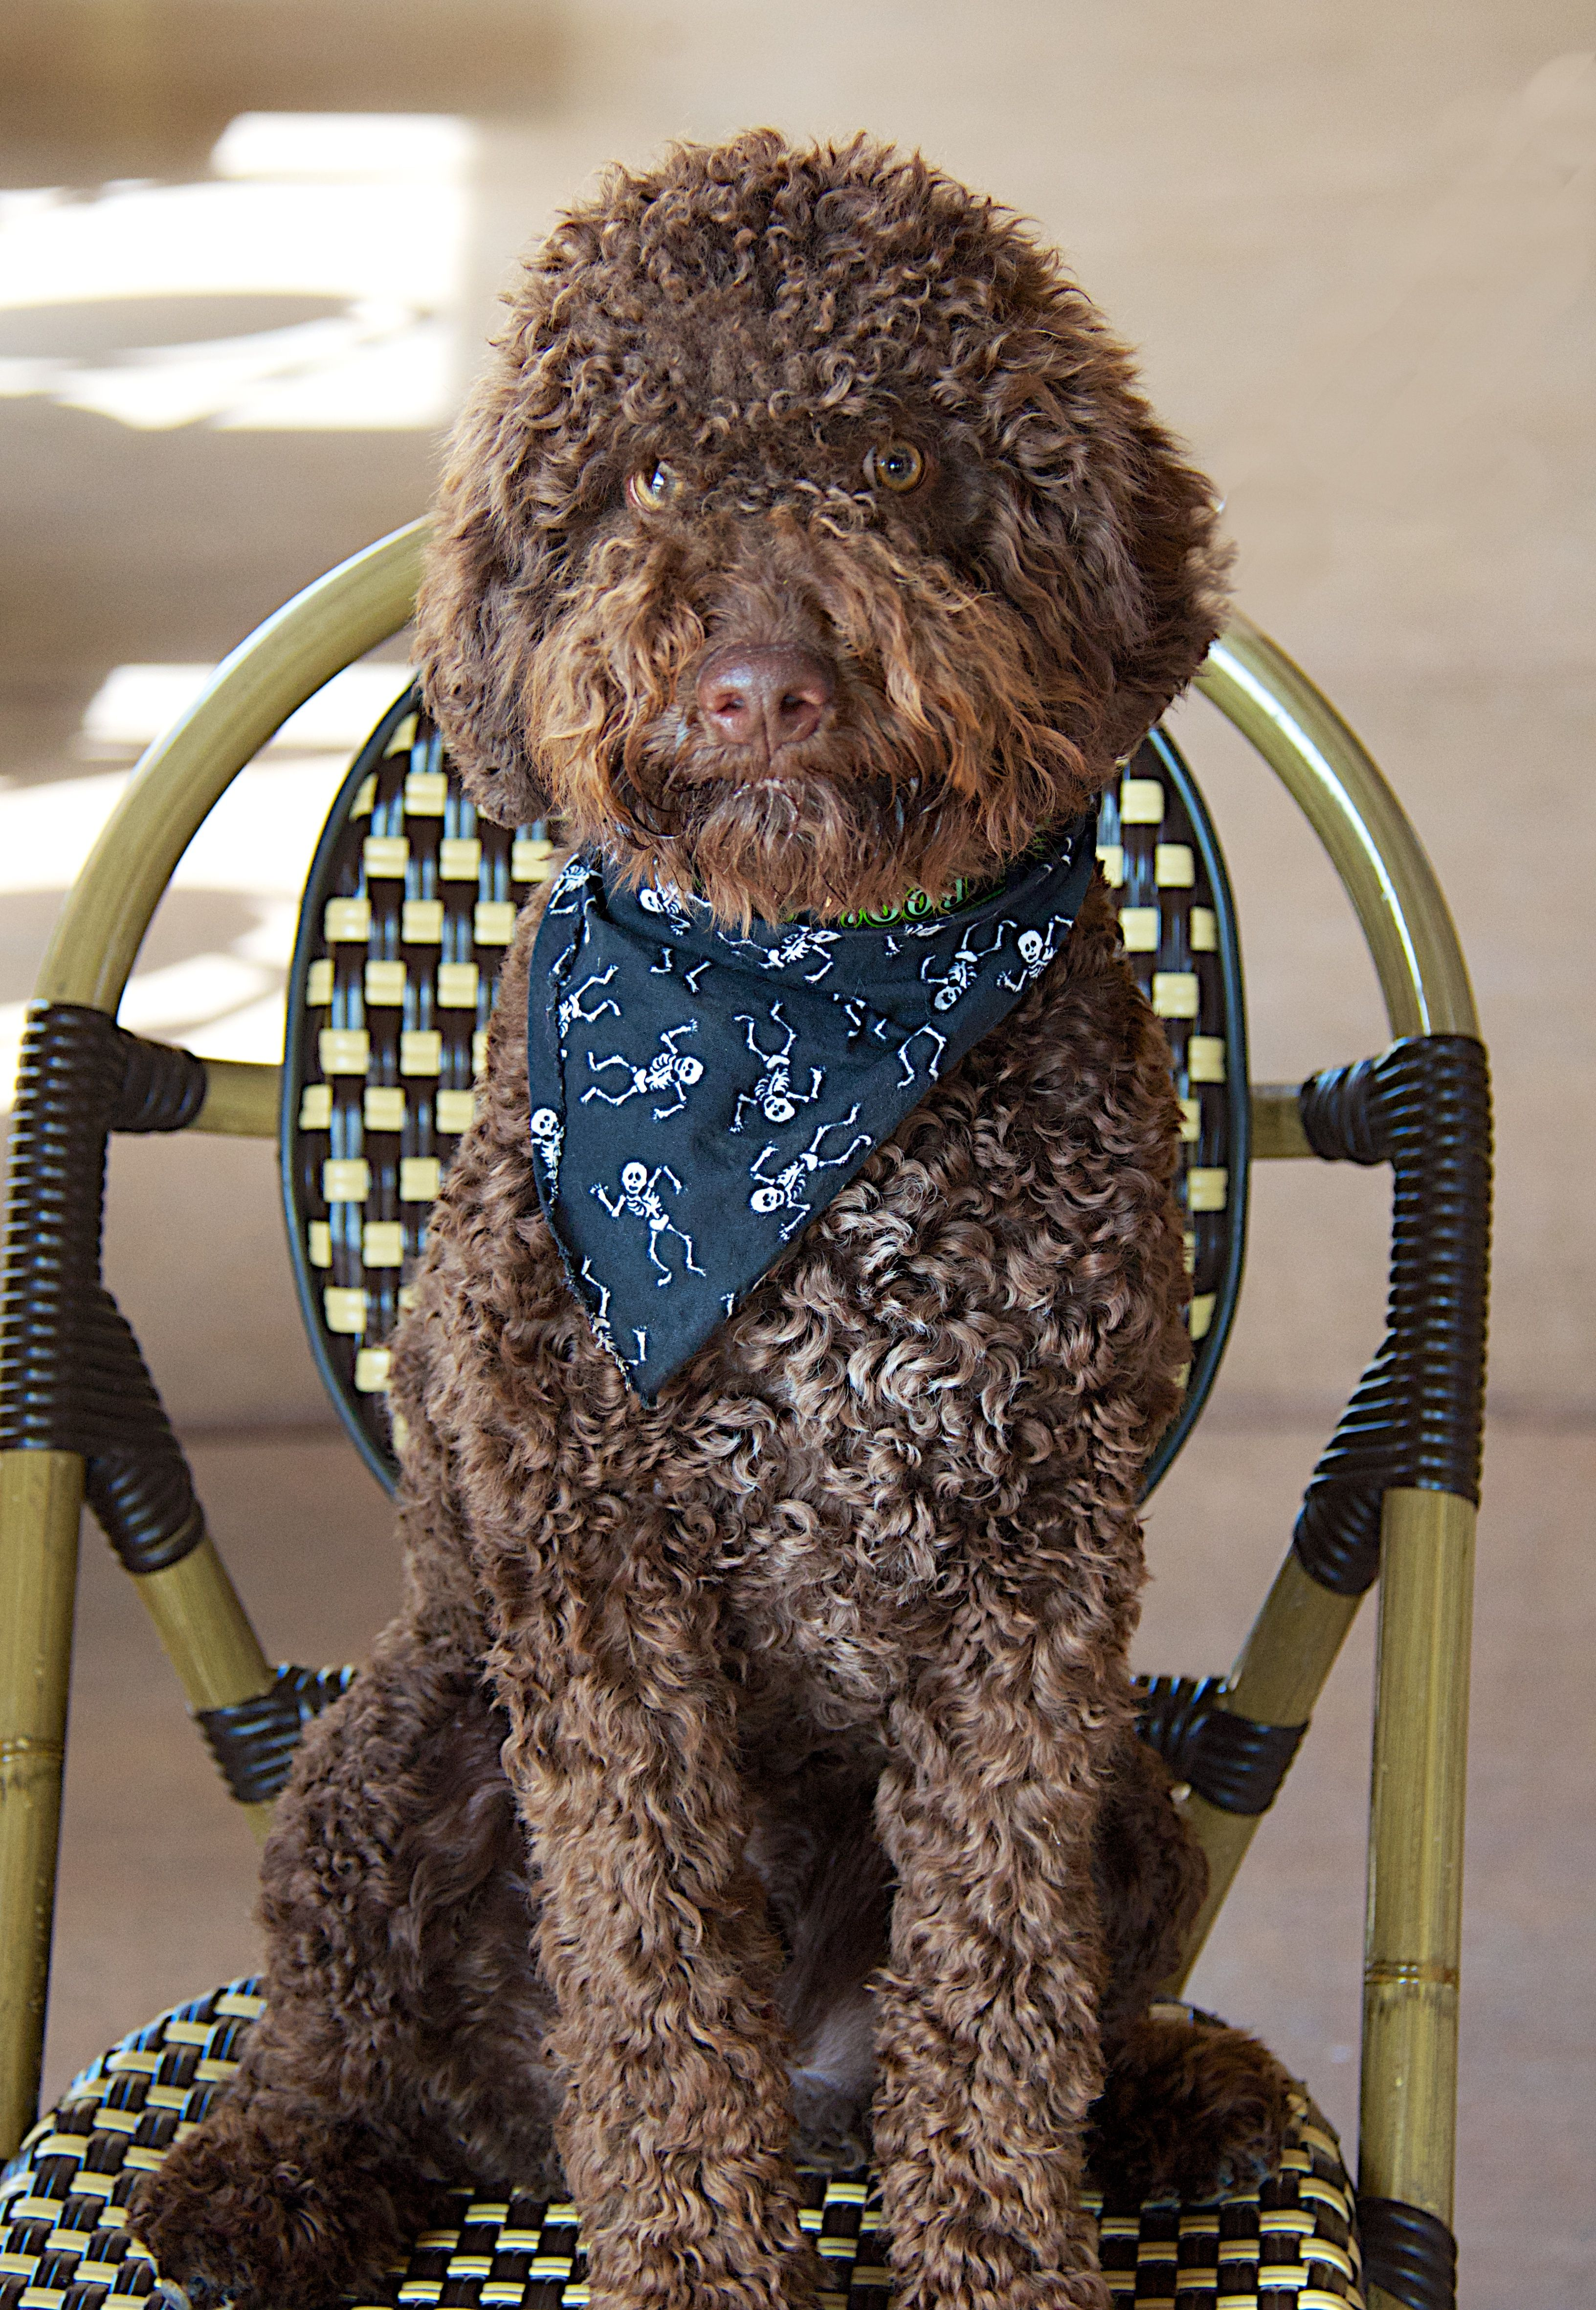 Marco our Mascot is a Lagotto Romagnolo that is in training to hunt ...